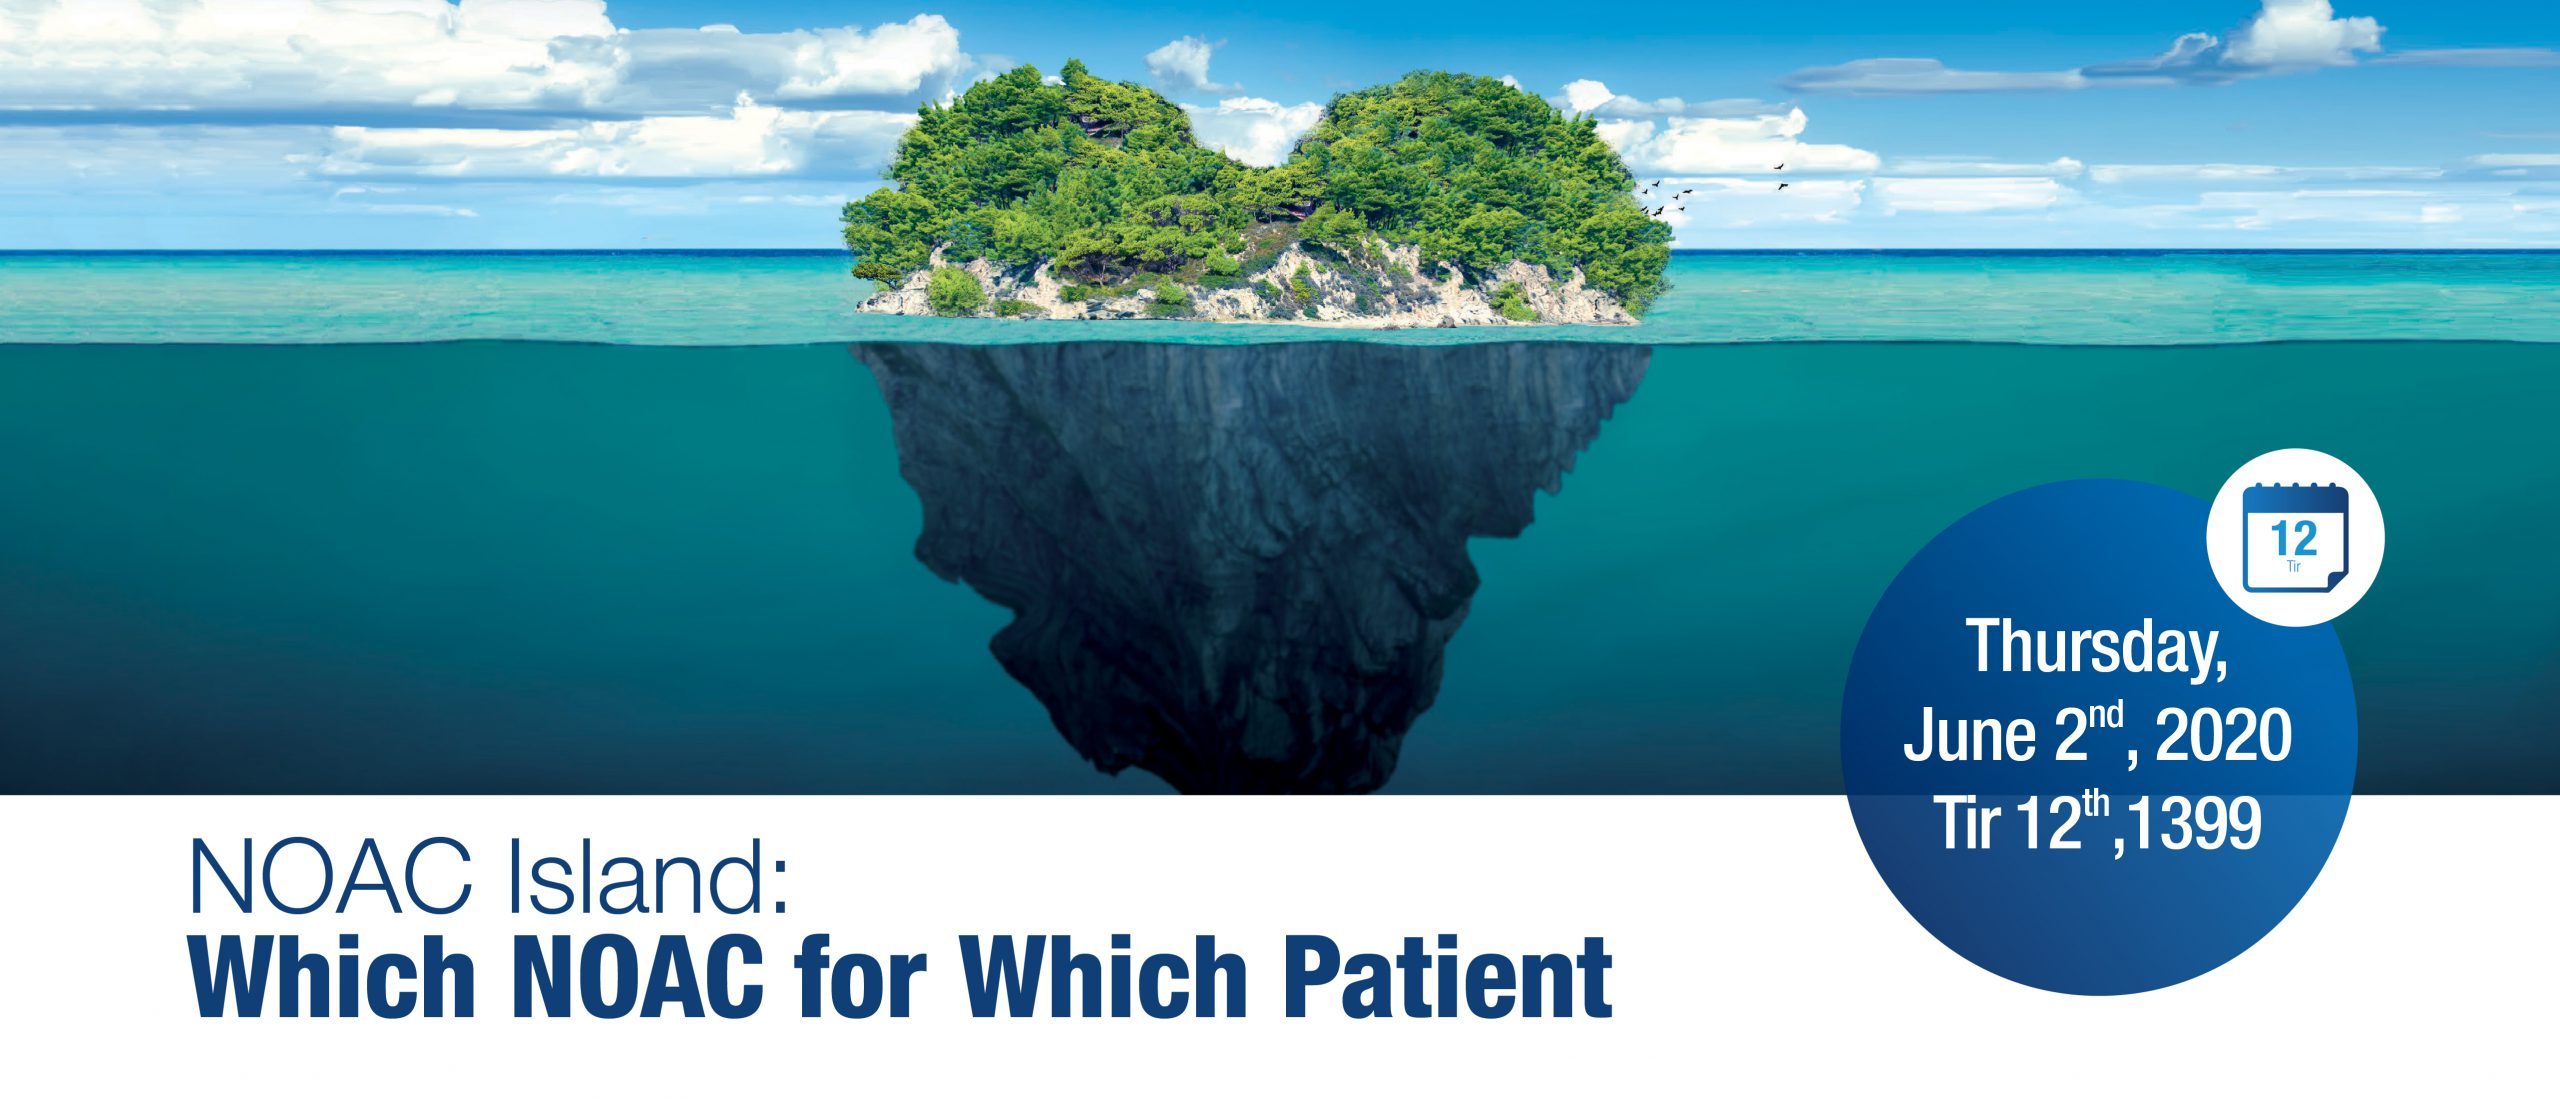 NOAC Island: Which NOAC for Which Patient